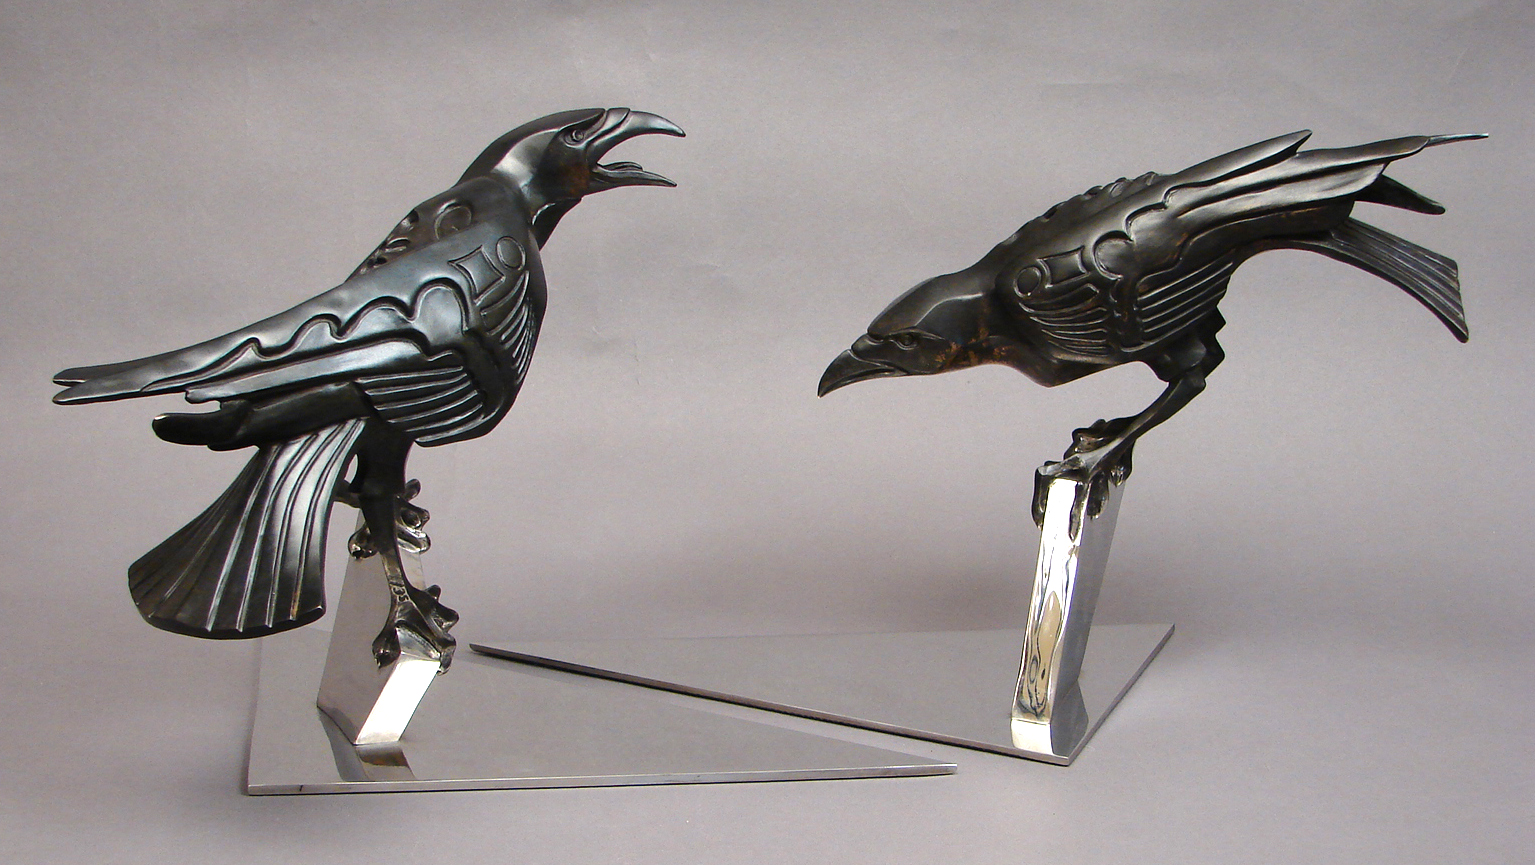 bronze-crow-sculptures-by-john-maisano-4.jpg